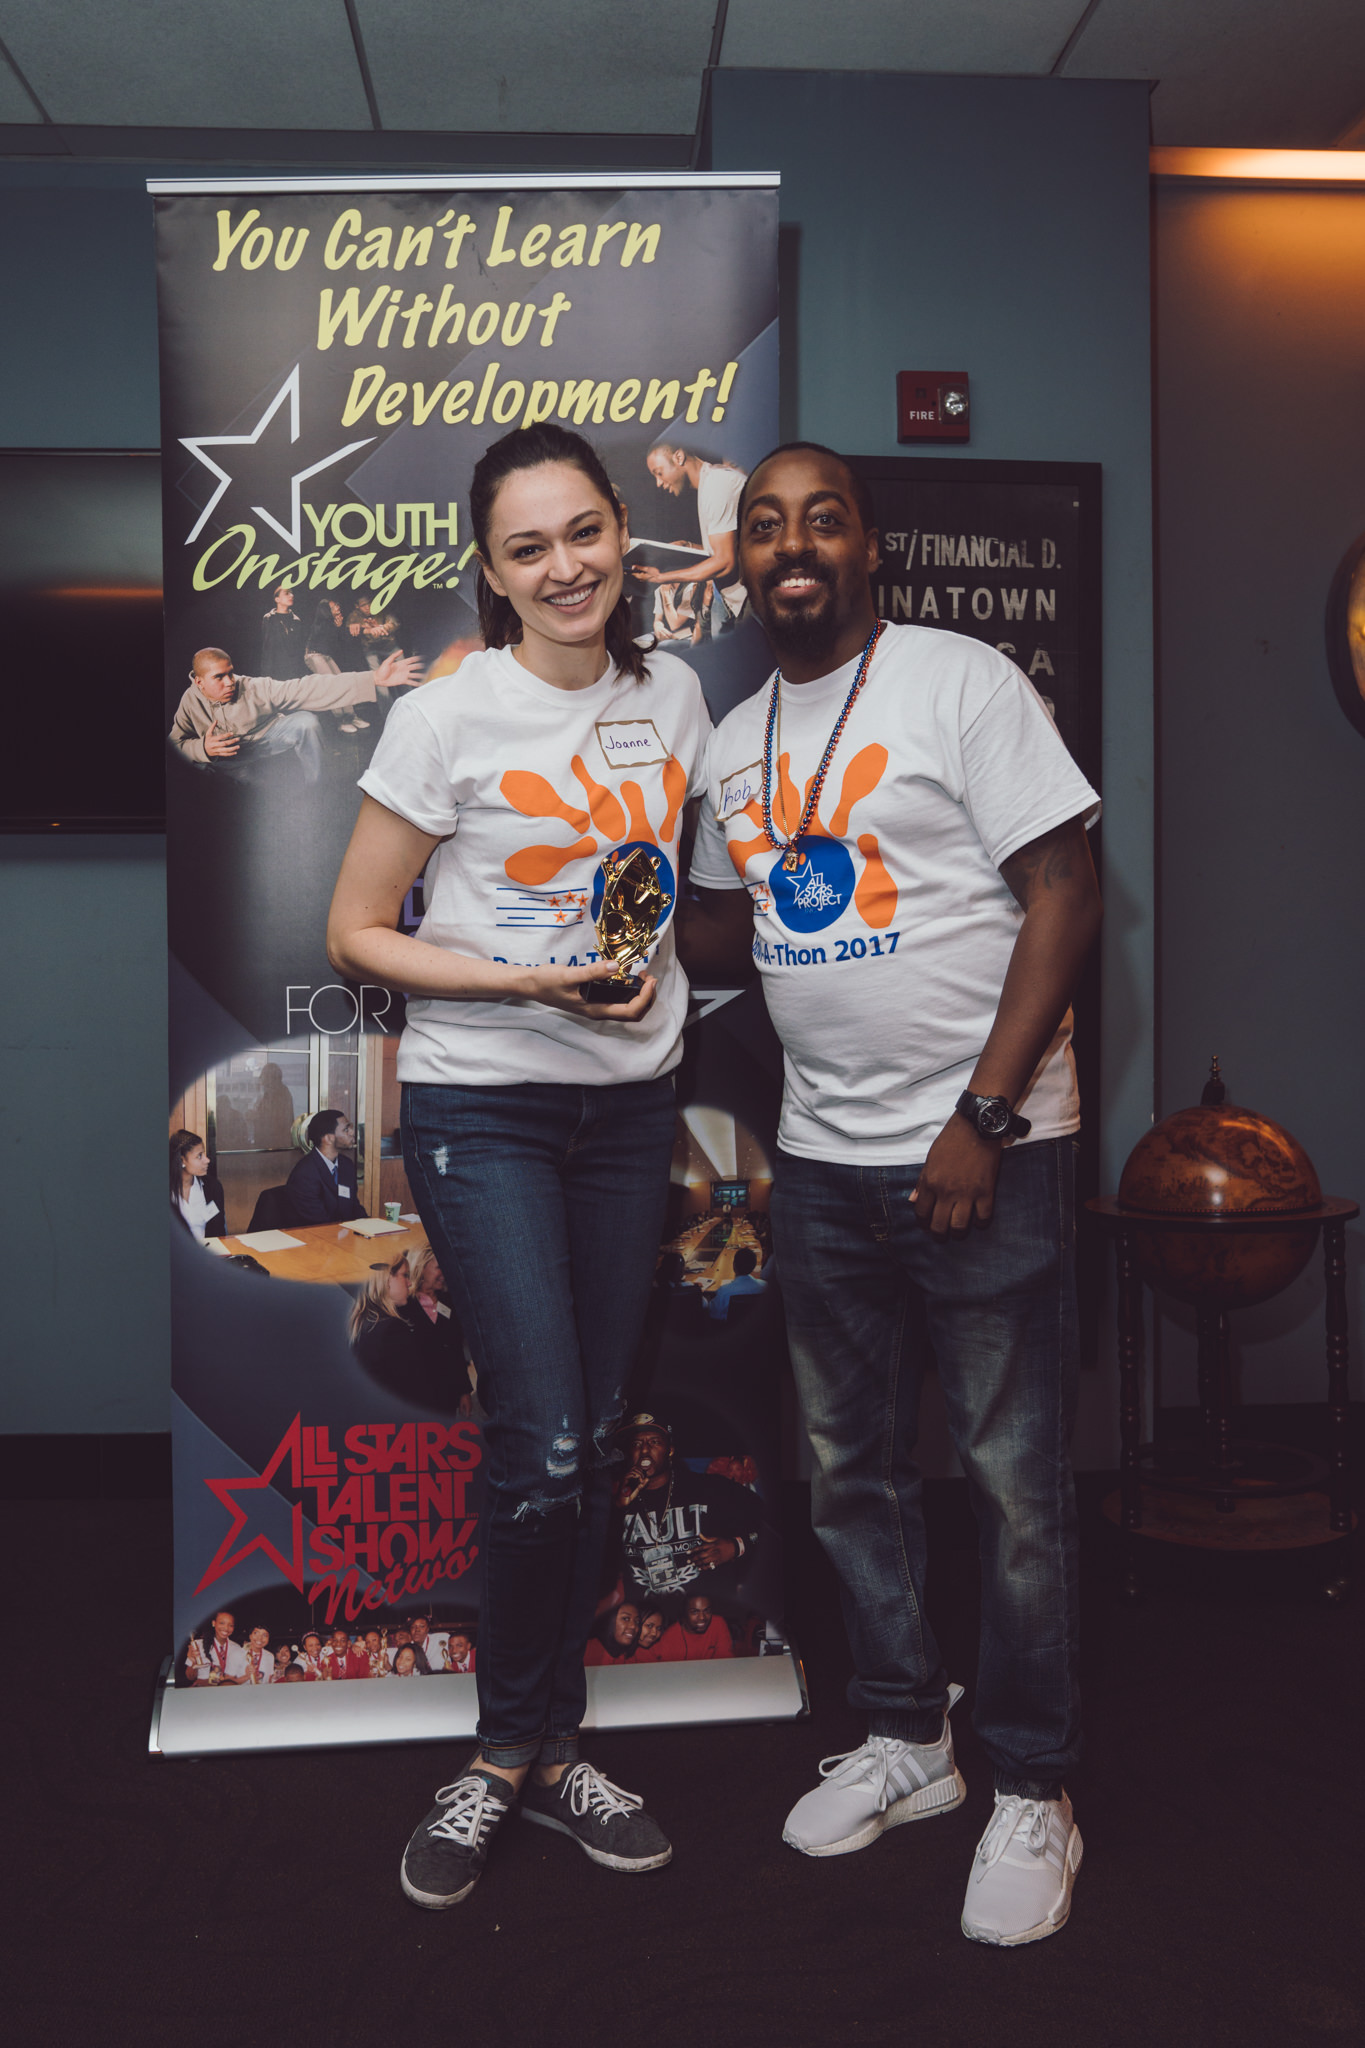 Celebrating high fundraising numbers at All Stars Project's annual Bowl-A-Thon fundraising event. Photo by Daniel Lee.